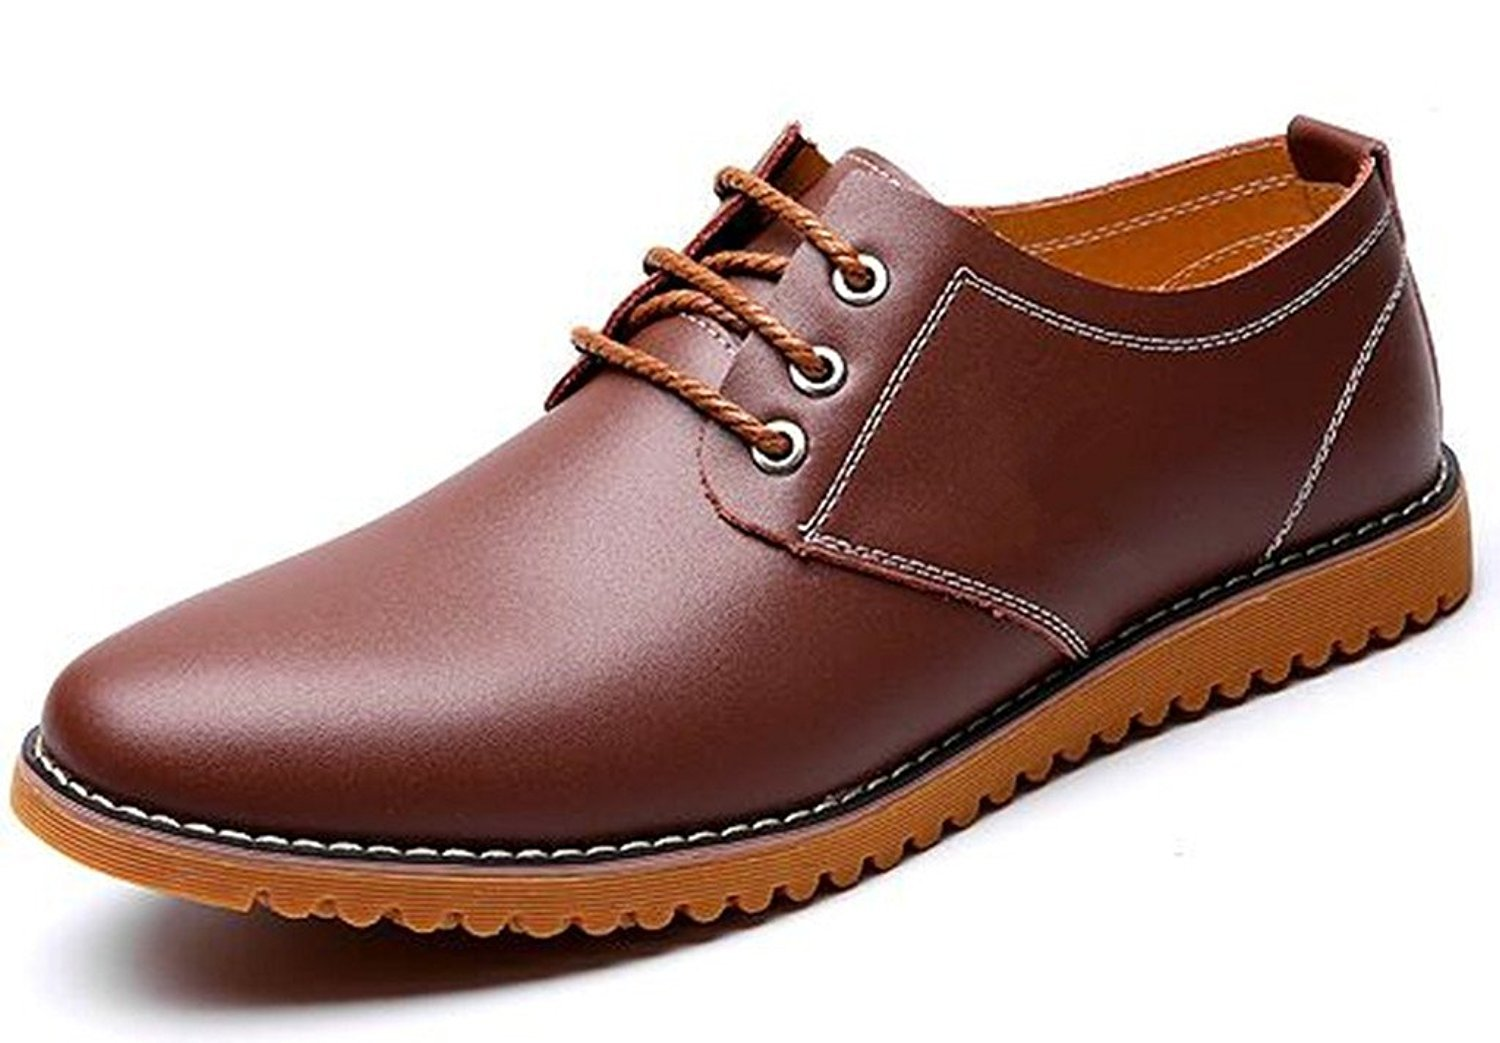 DADAWEN Men's Classic Modern Lace Up Leather Oxford Dress Shoes Brown US Size 8